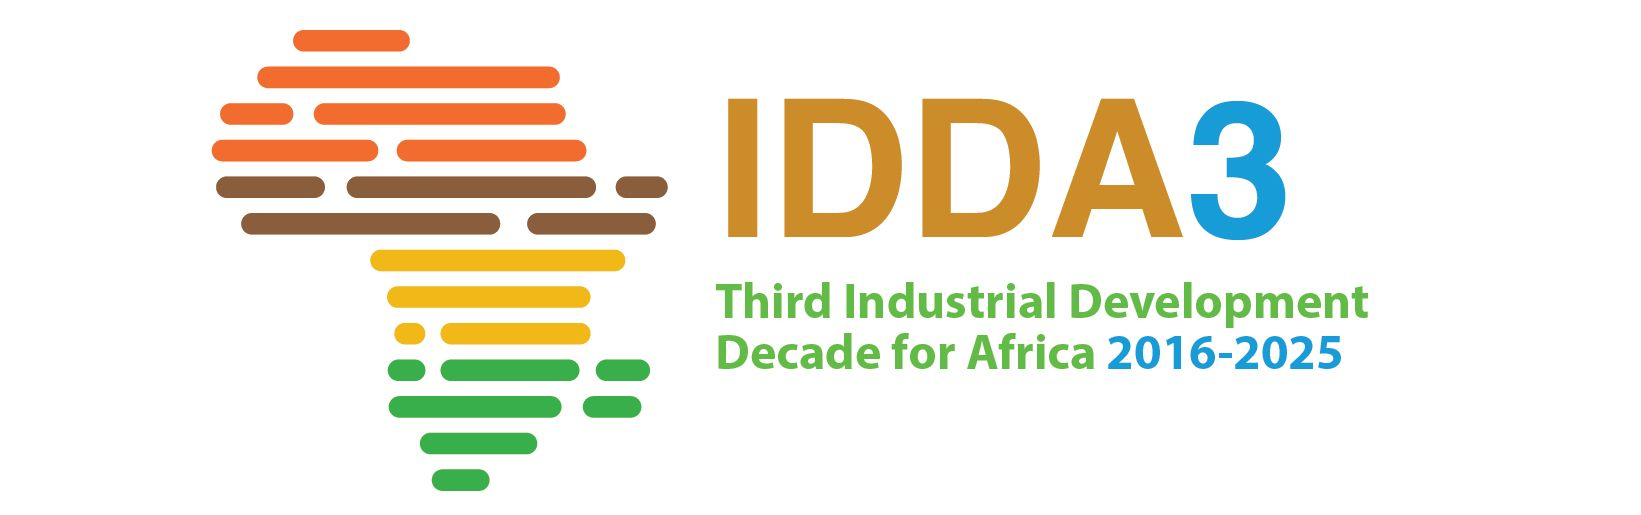 Can Africa's third industrial development decade deliver?